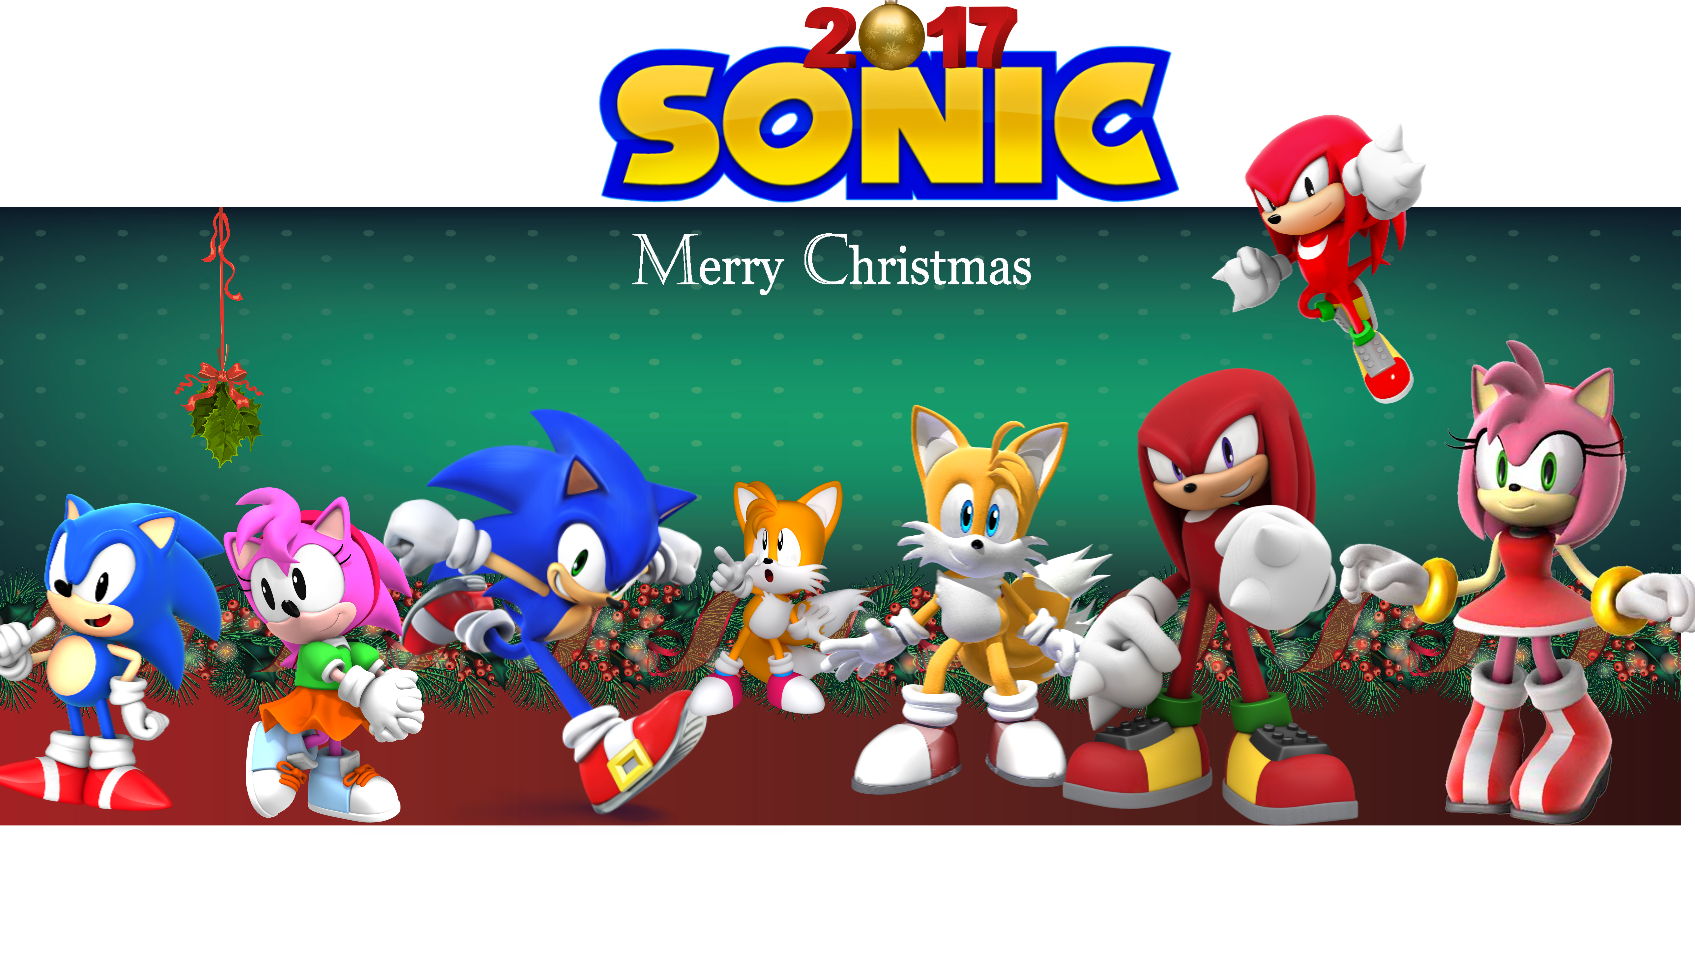 merry christmas from sonic and pals - Sonic Hours Christmas Day